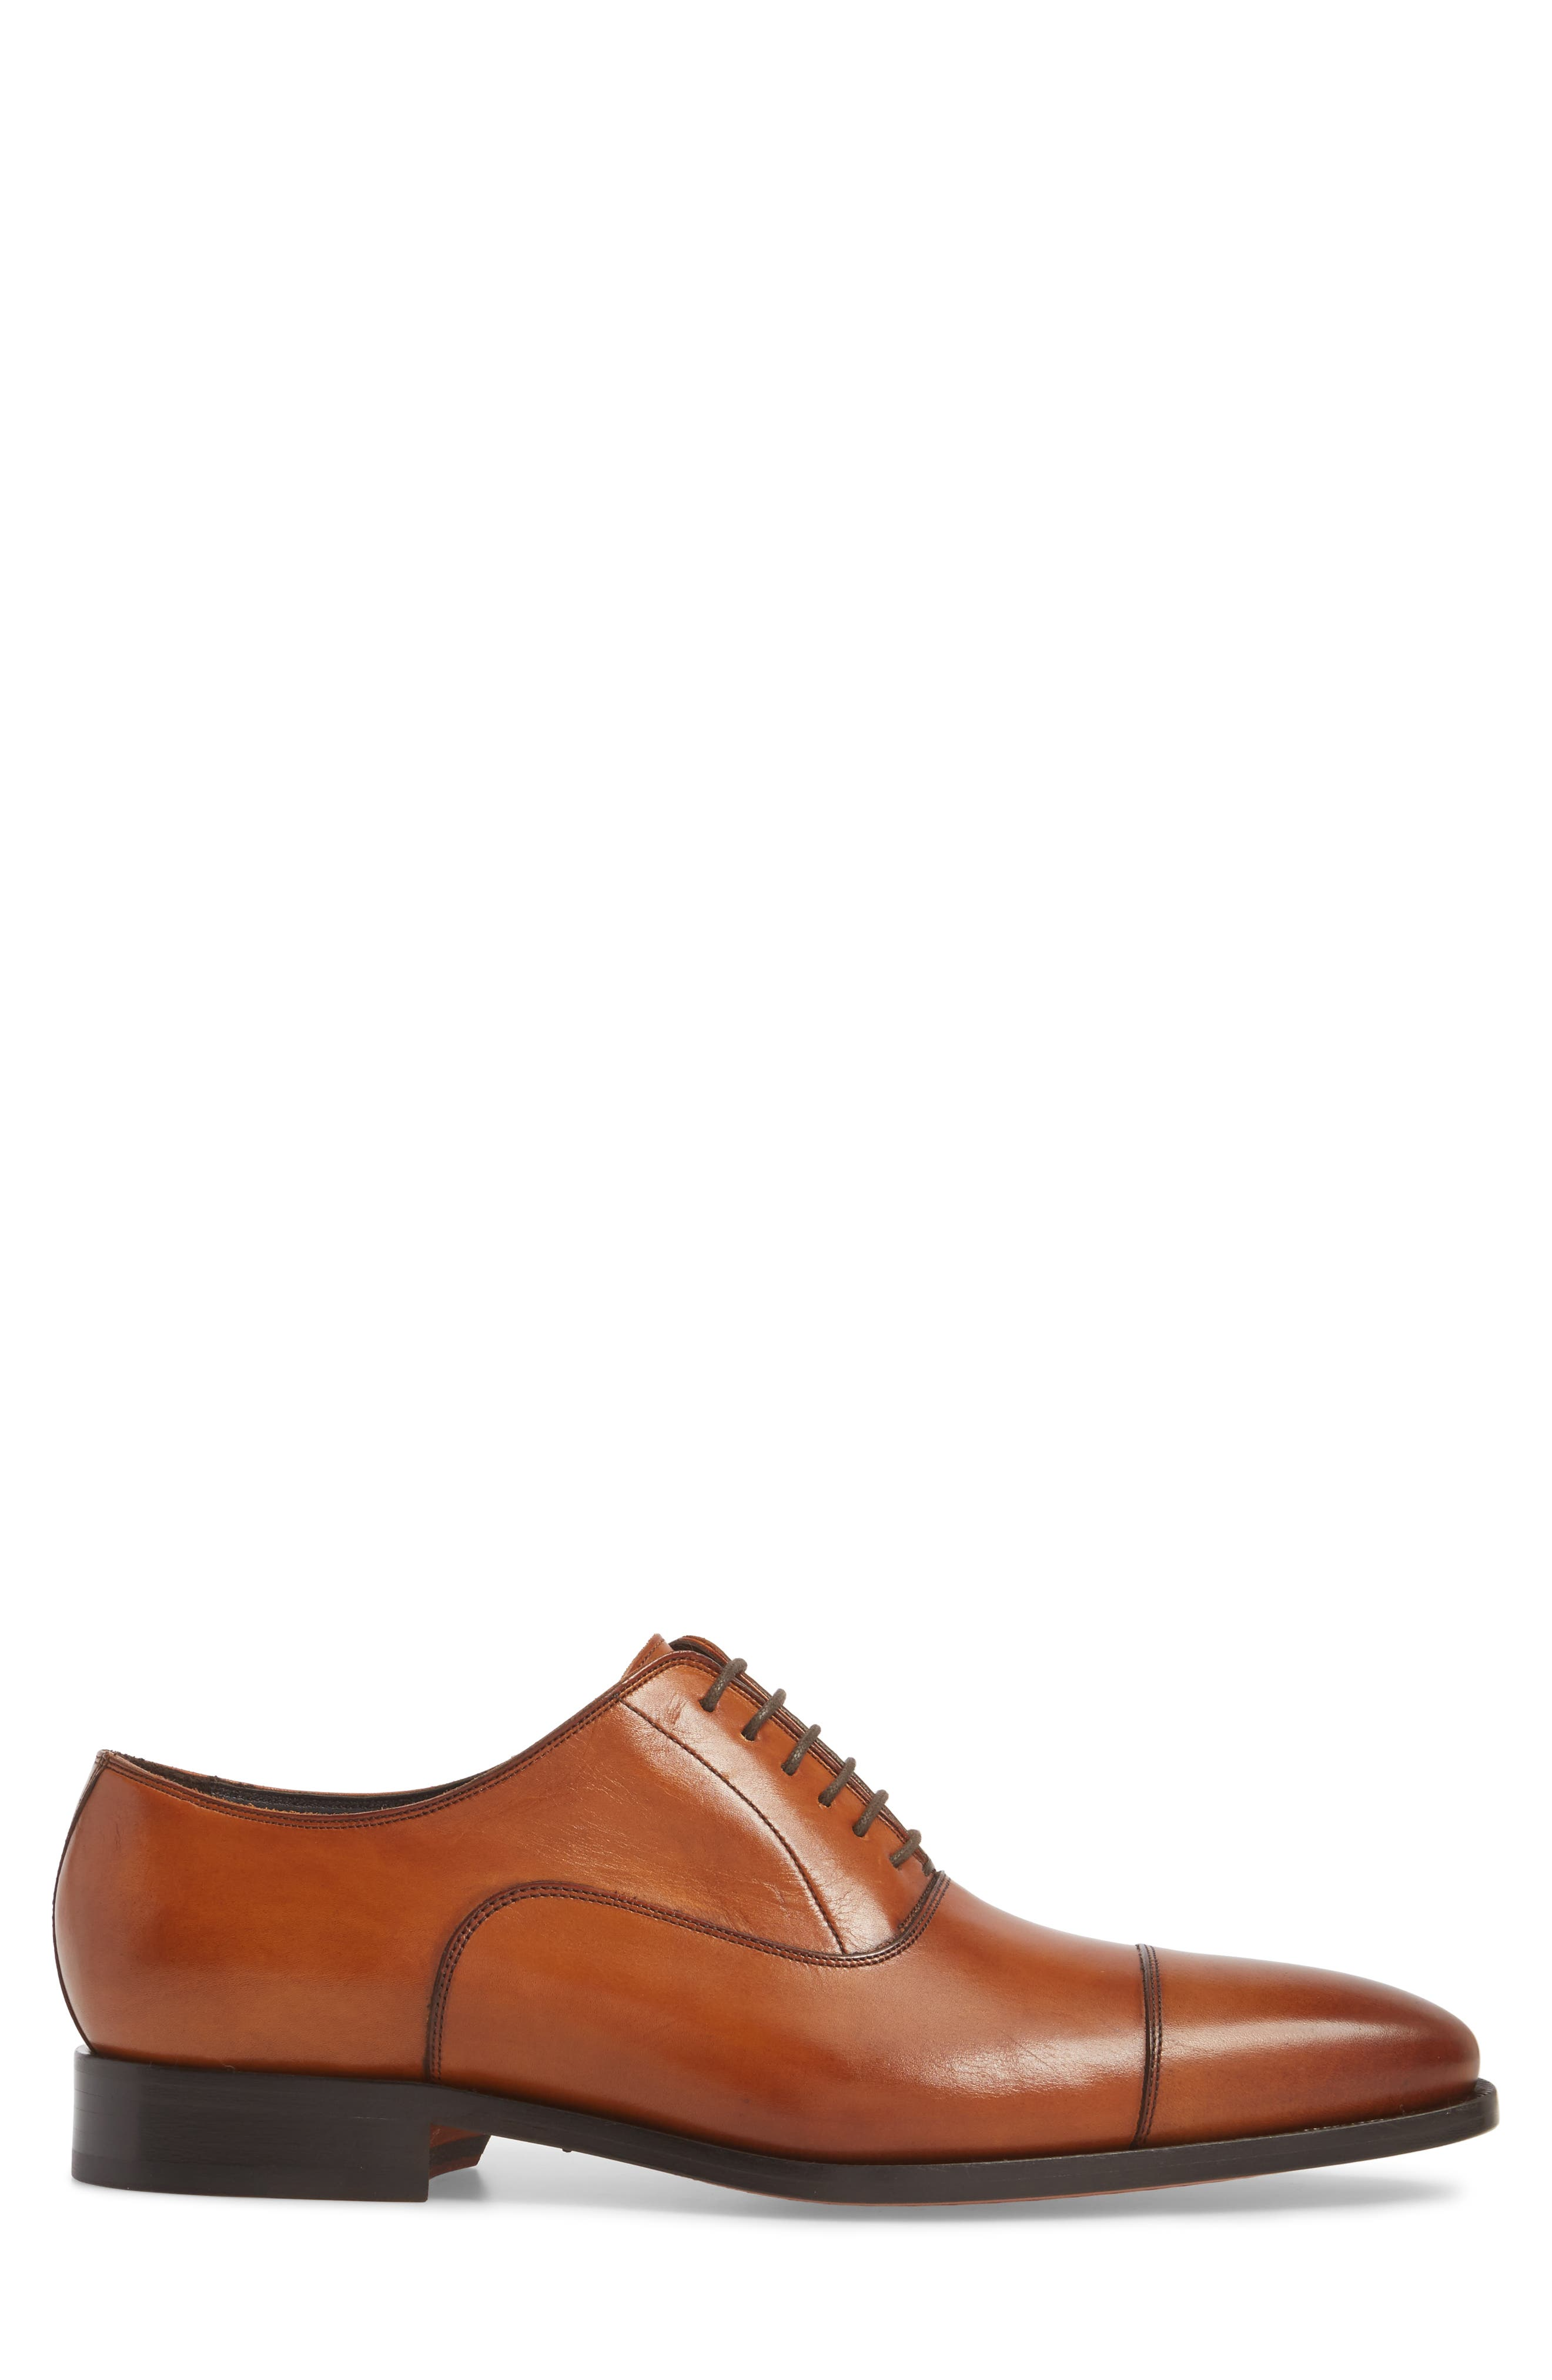 TO BOOT NEW YORK, Knoll Cap Toe Oxford, Alternate thumbnail 3, color, COGNAC LEATHER